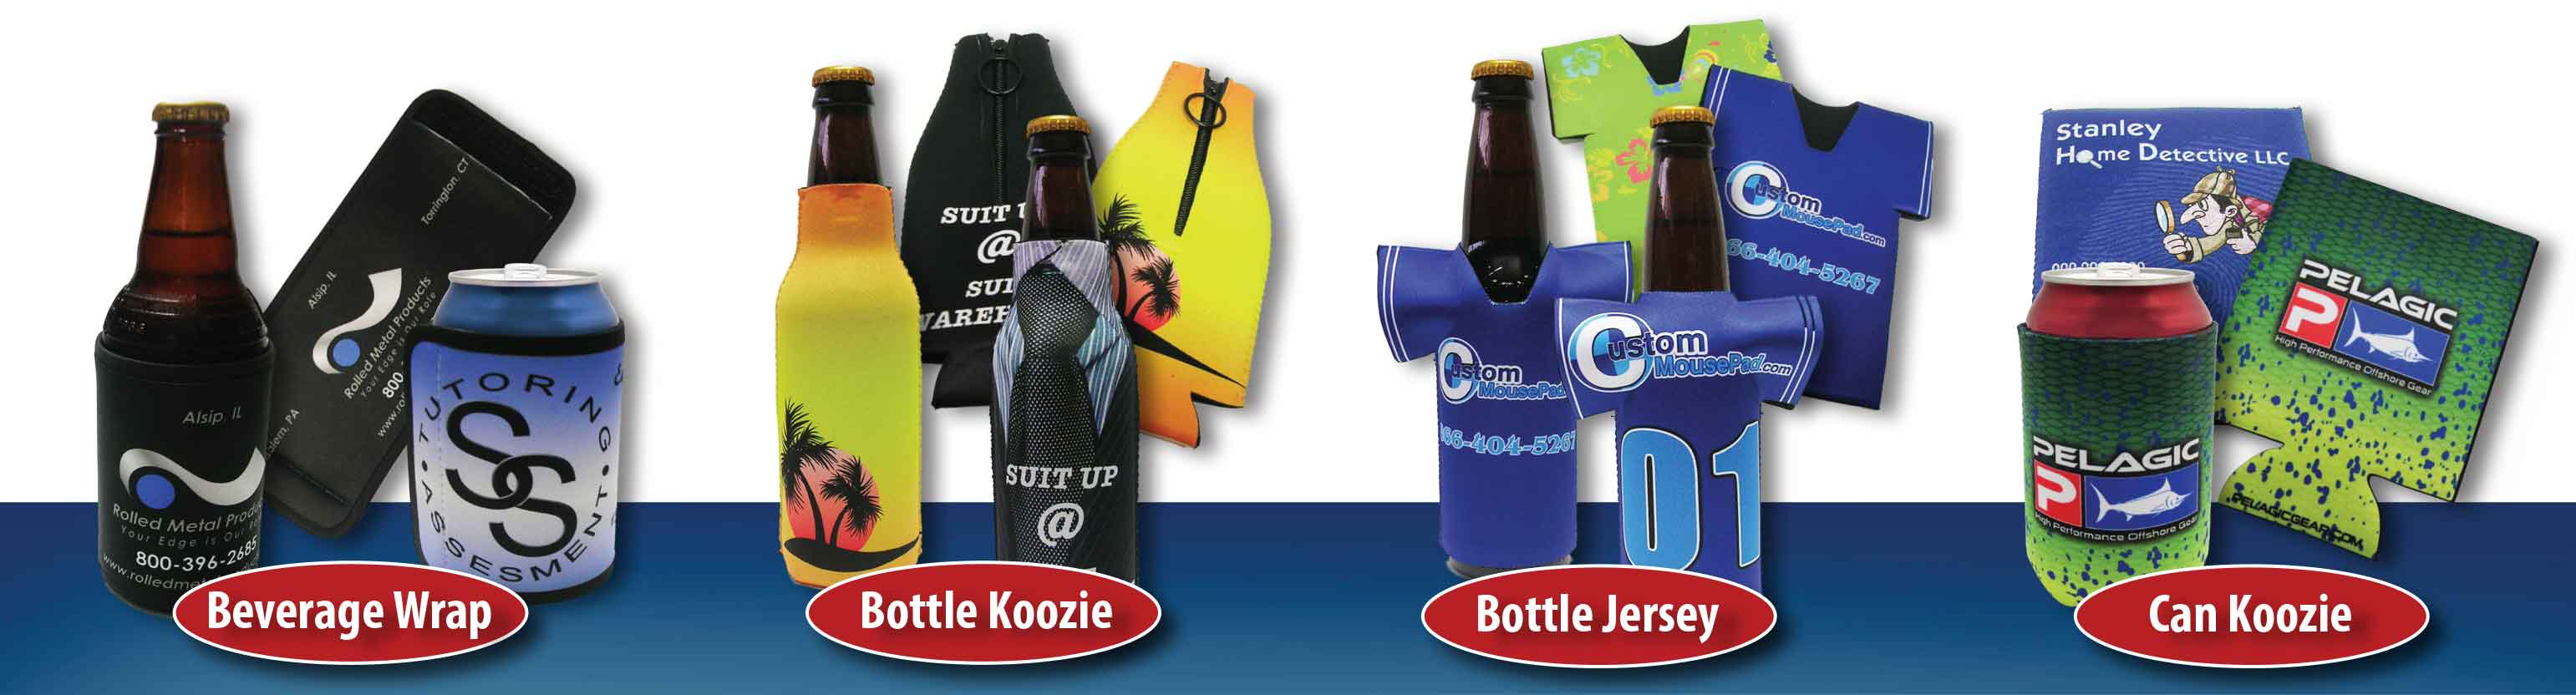 Beverage and Can koozies custom printed full color